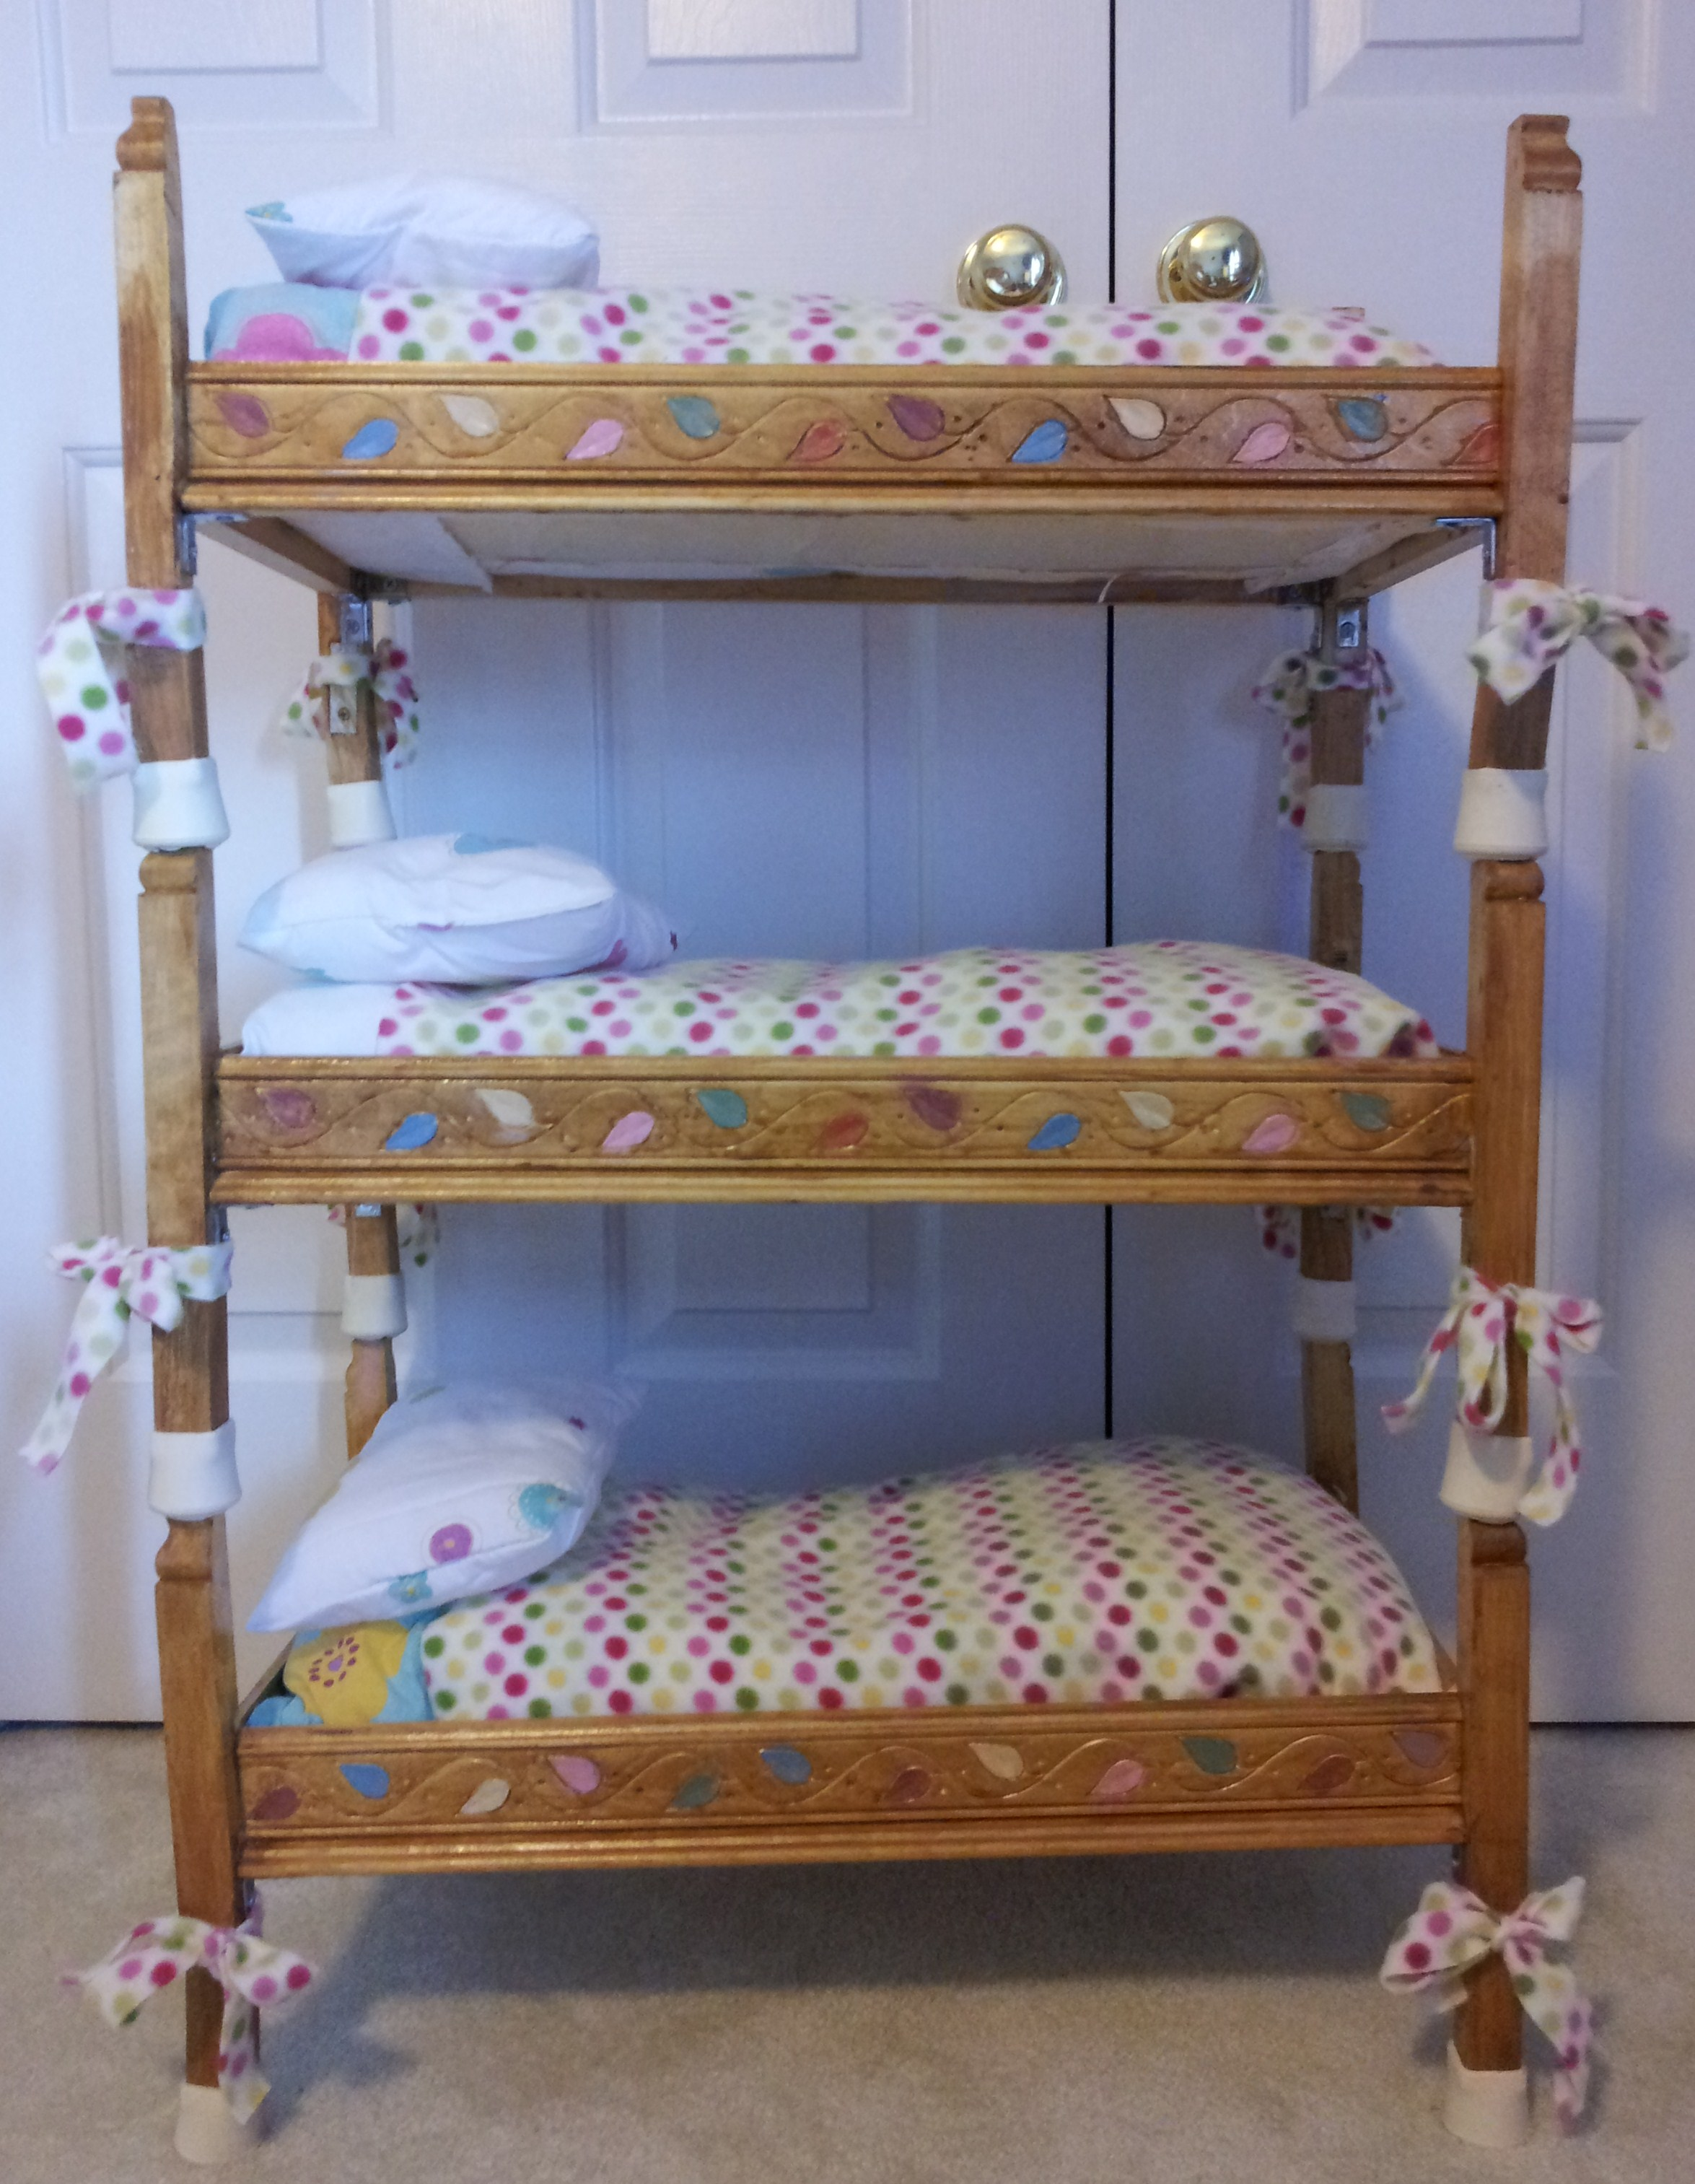 American Girl Bunk Bed Plans | BED PLANS DIY & BLUEPRINTS